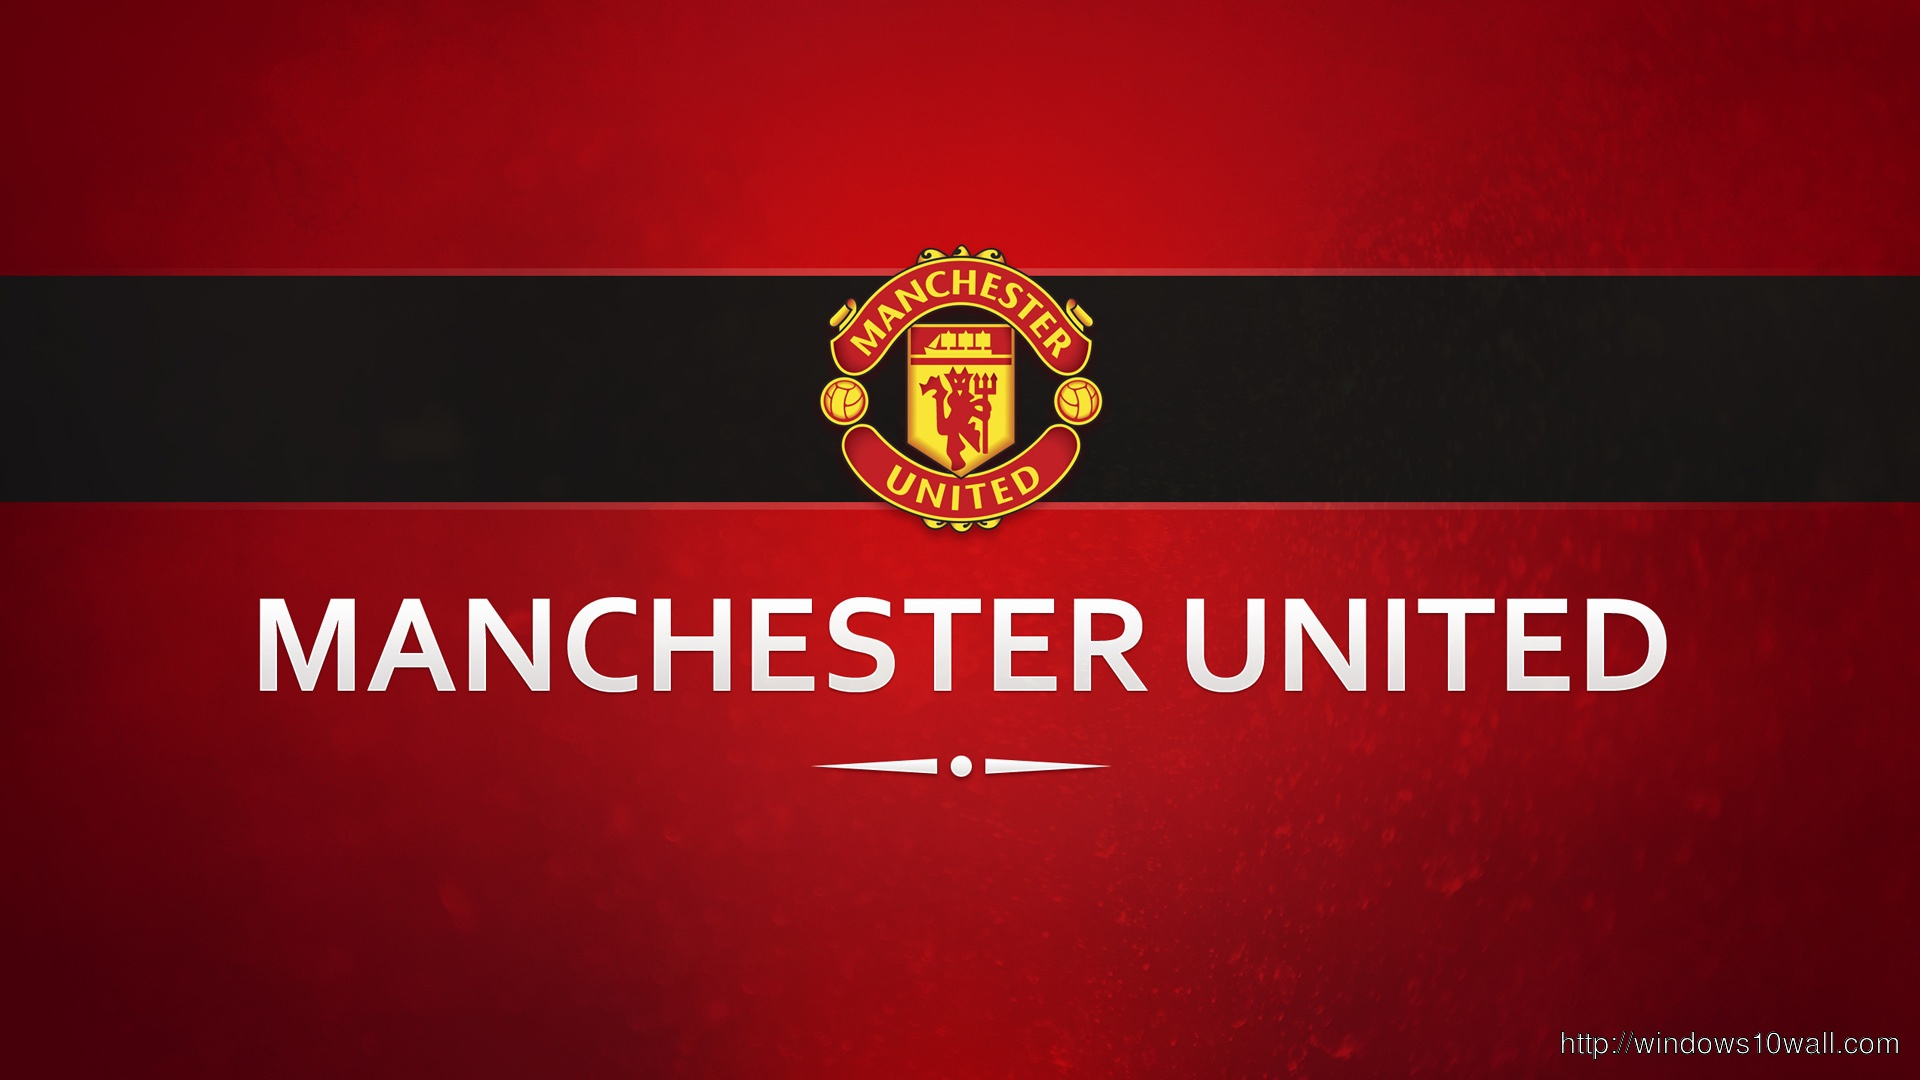 Man United 2013 Desktop Background Wallpaper